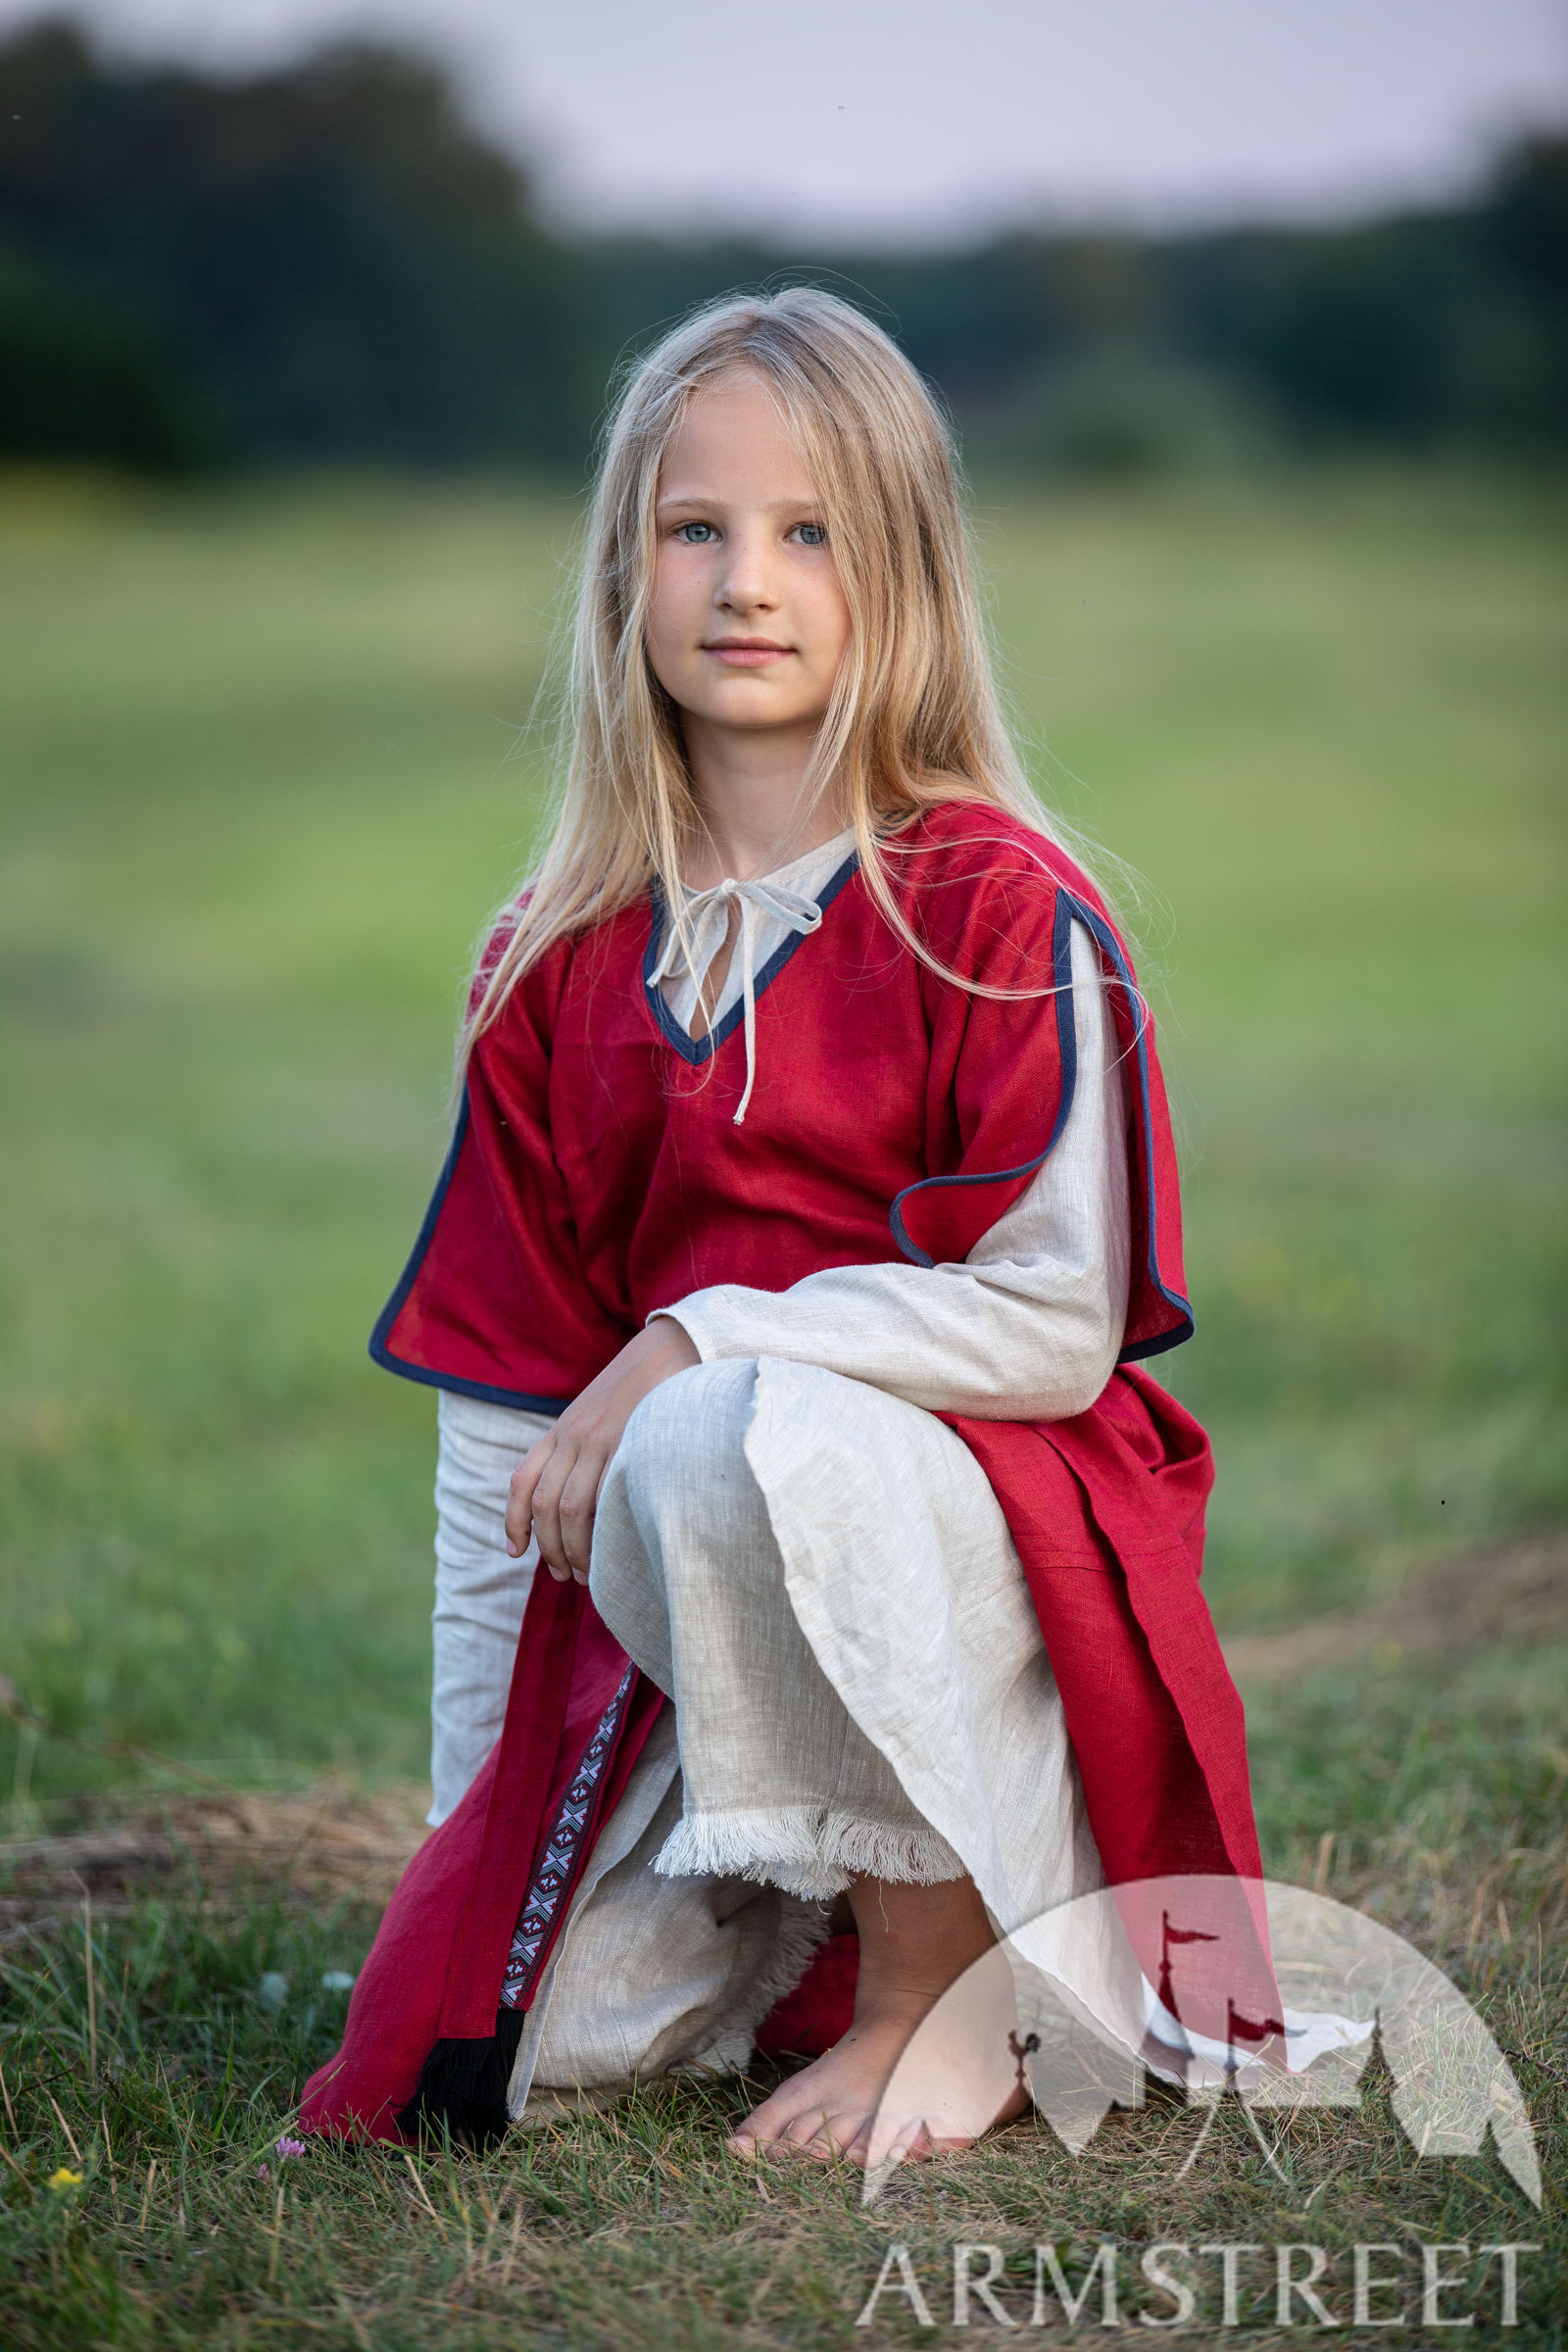 https://armstreet.com/catalogue/full/childrens-linen-tunic-with-contrasting-border-first-adventure-12.jpg